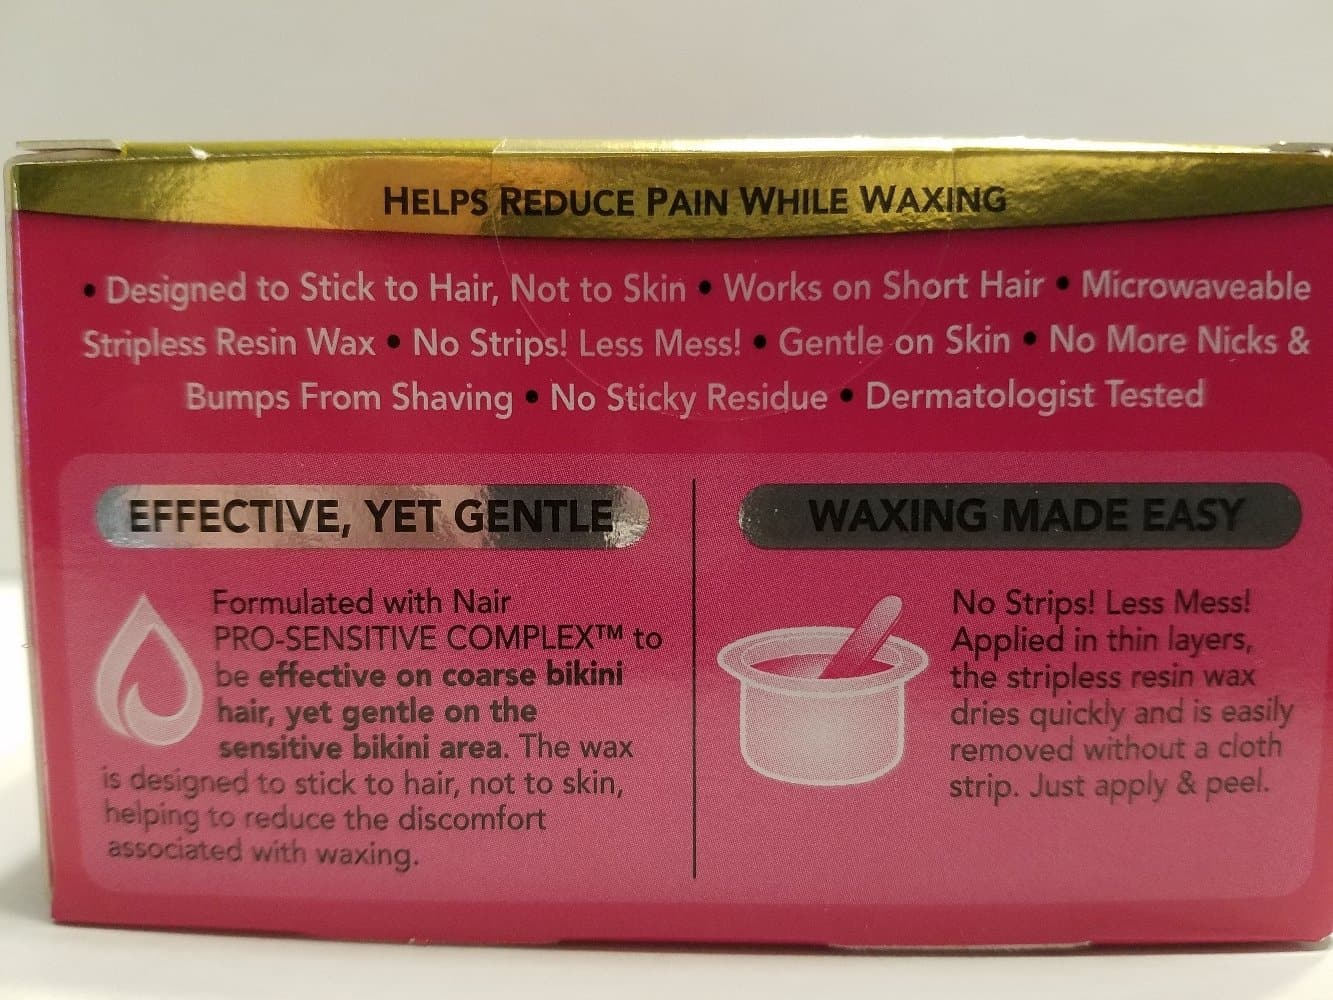 Nair Wax Bikini Pro Microwaveable Stripless Sensitive Wax Hair Remover 3.5 Oz - FLJ CORPORATIONS